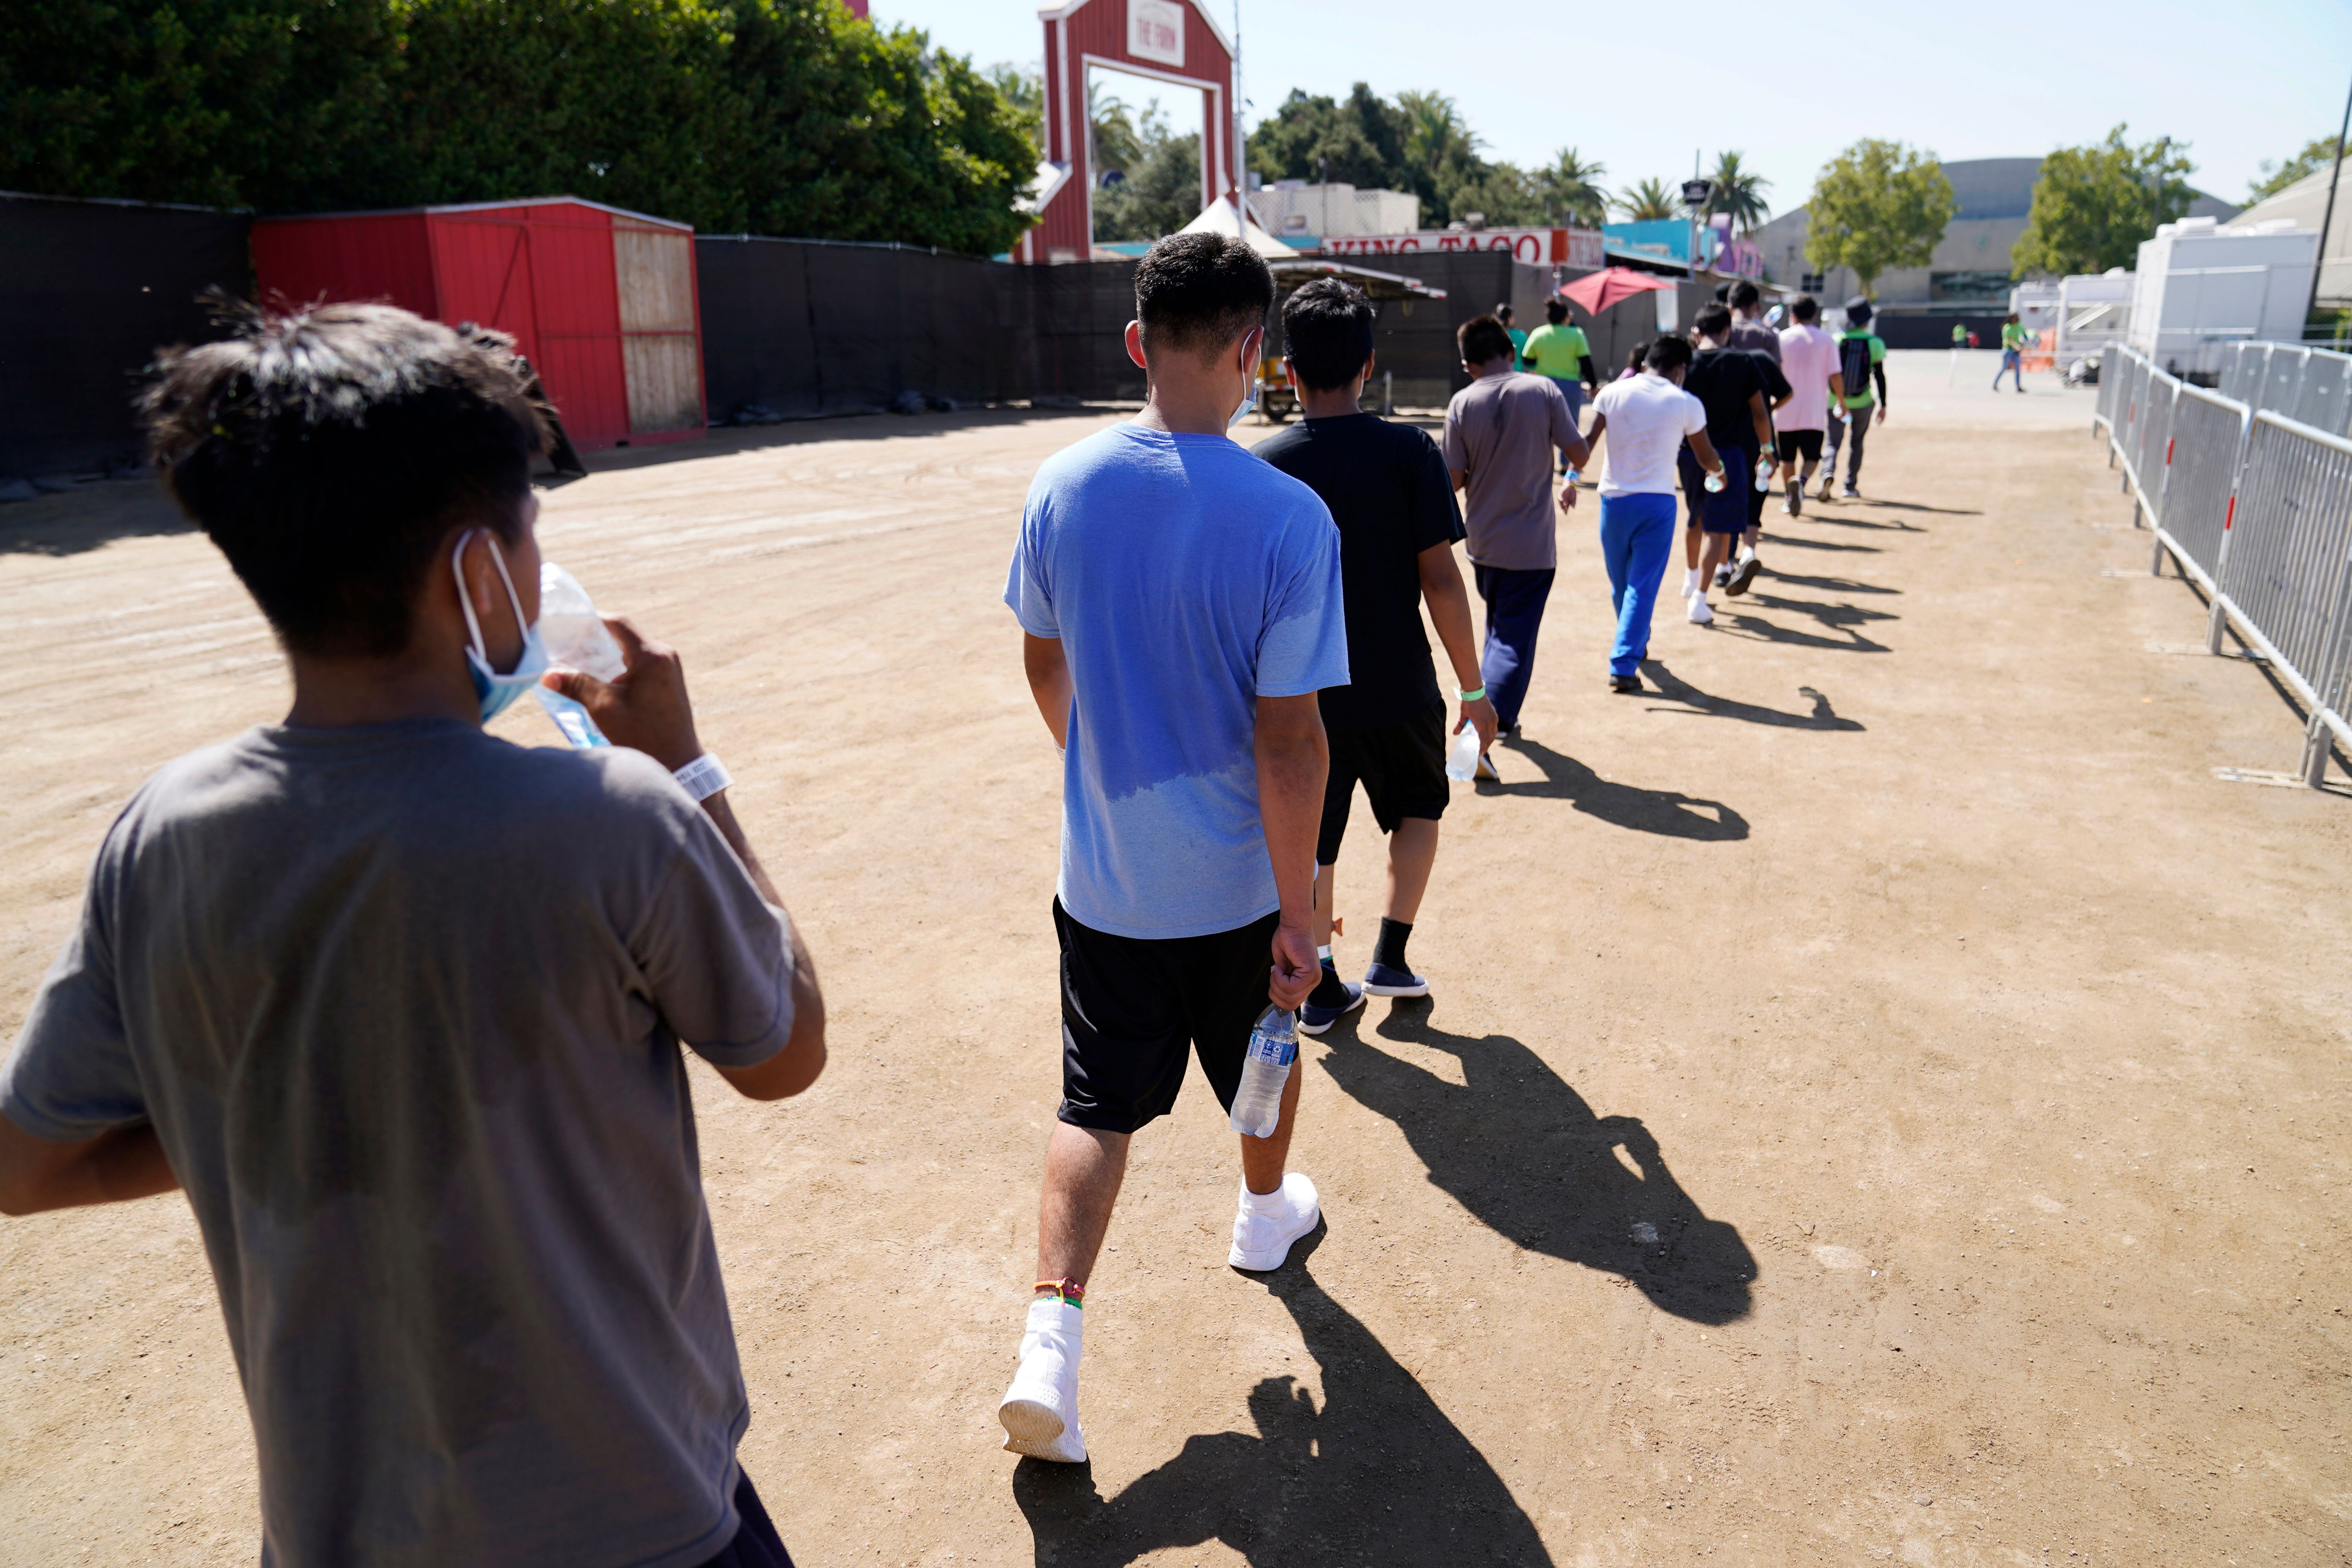 In this July 2, 2021, file photo, children walk together after a game of soccer at an emergency shelter for migrant children